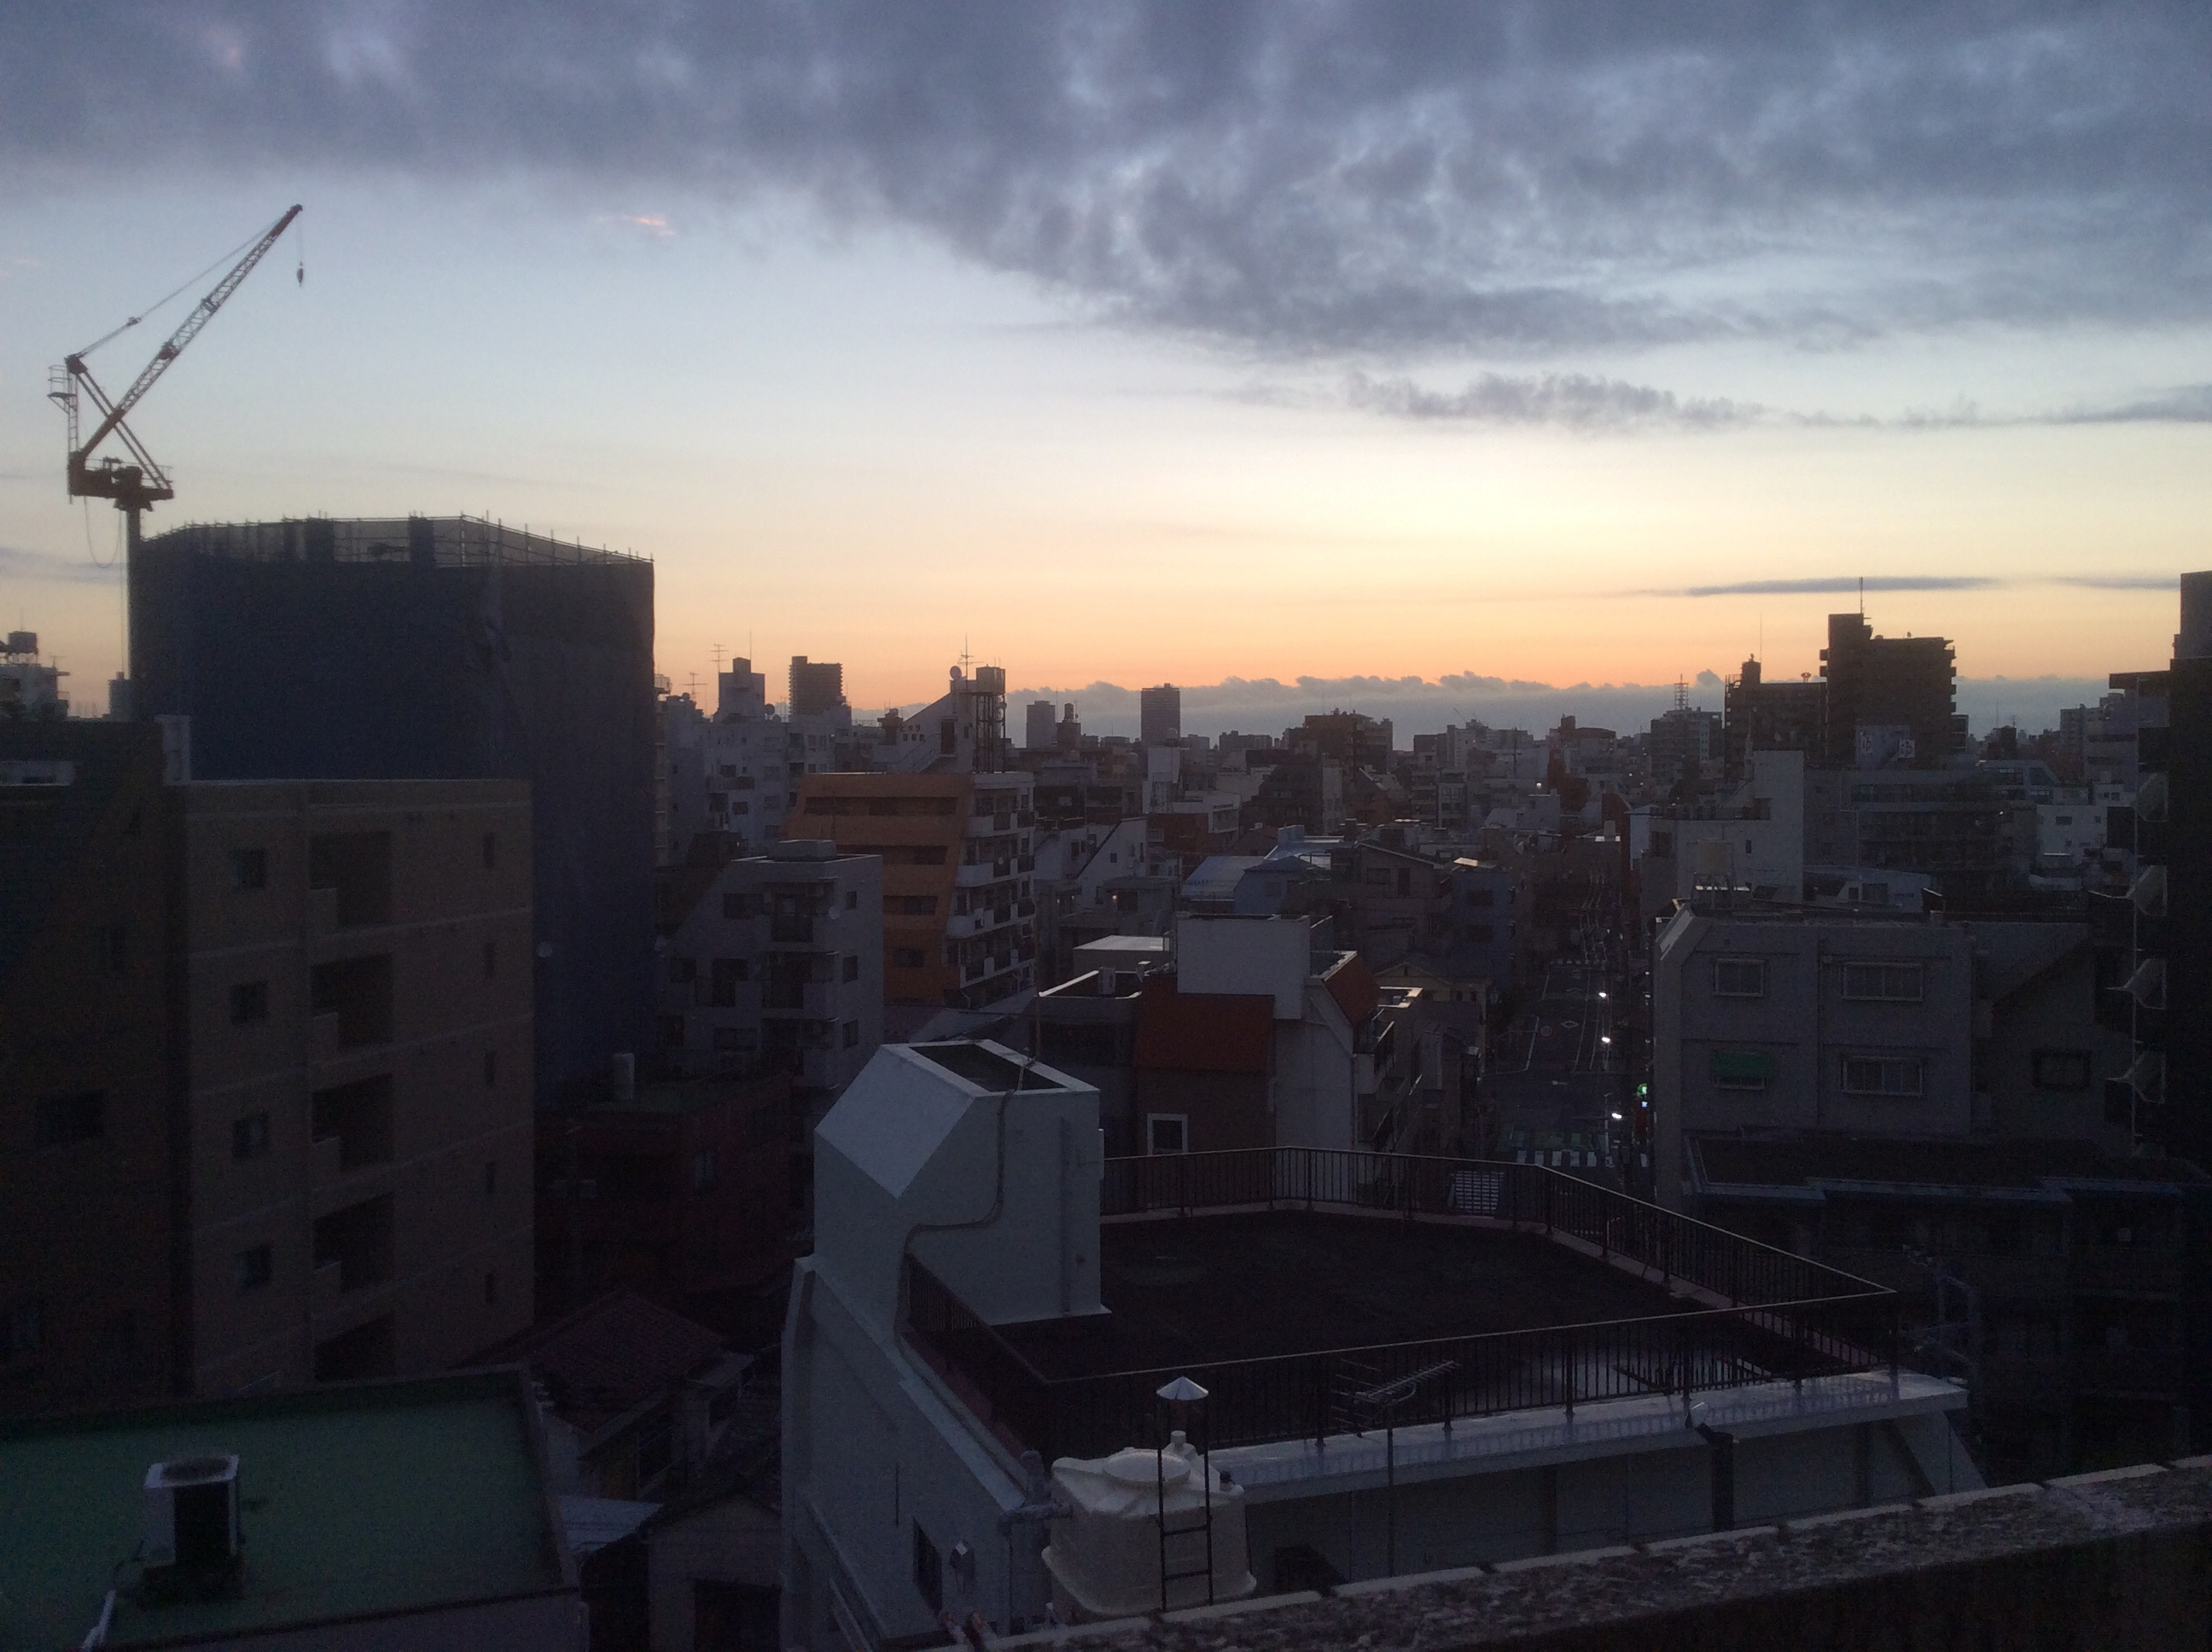 Just about to set off for the station. Early morning in Tokyo.